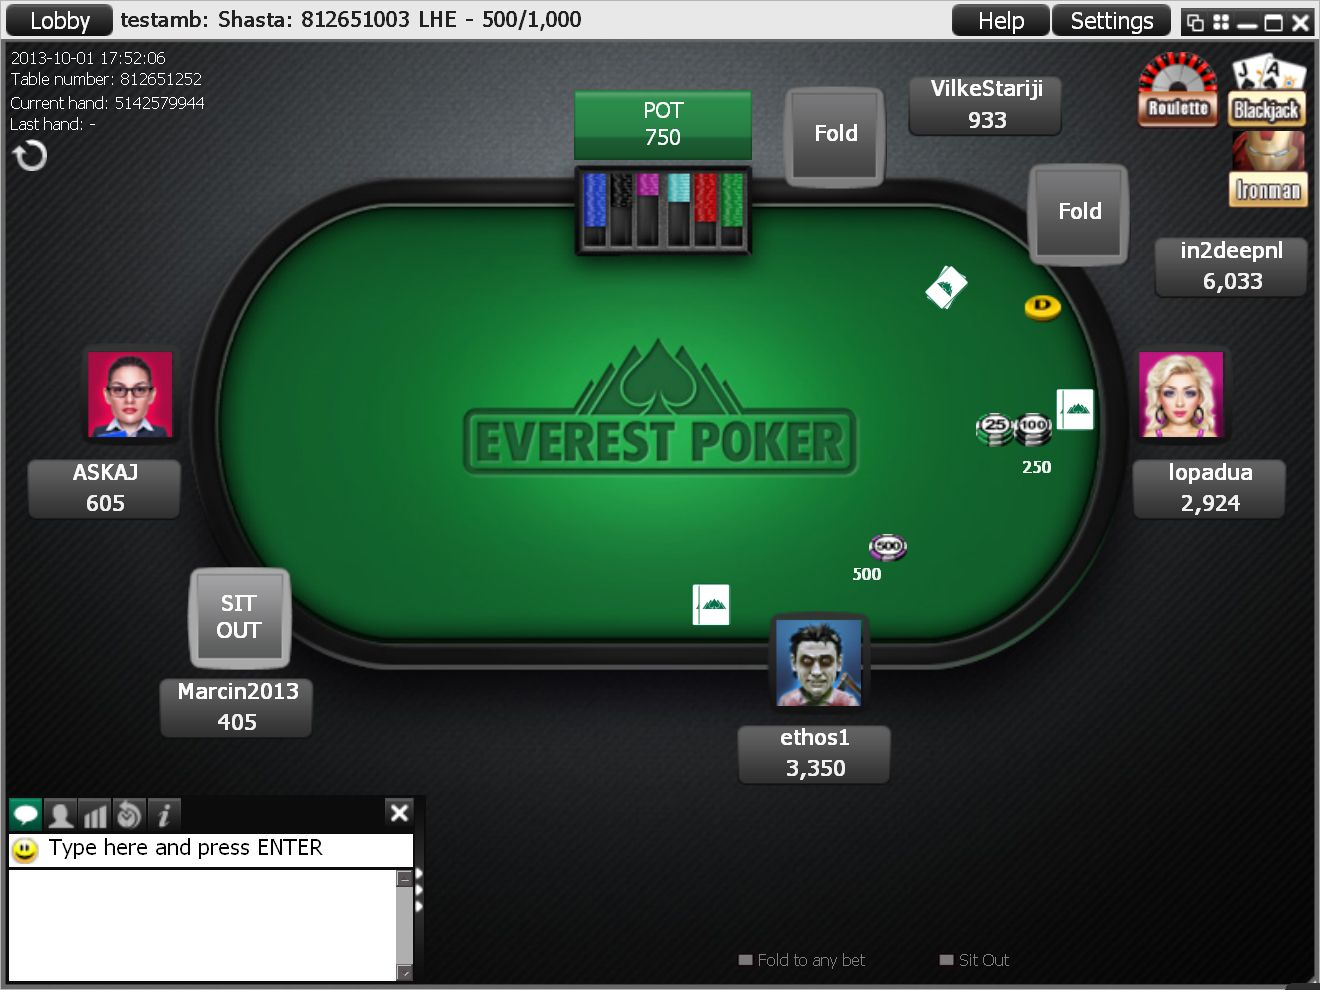 everest poker bonus first deposit